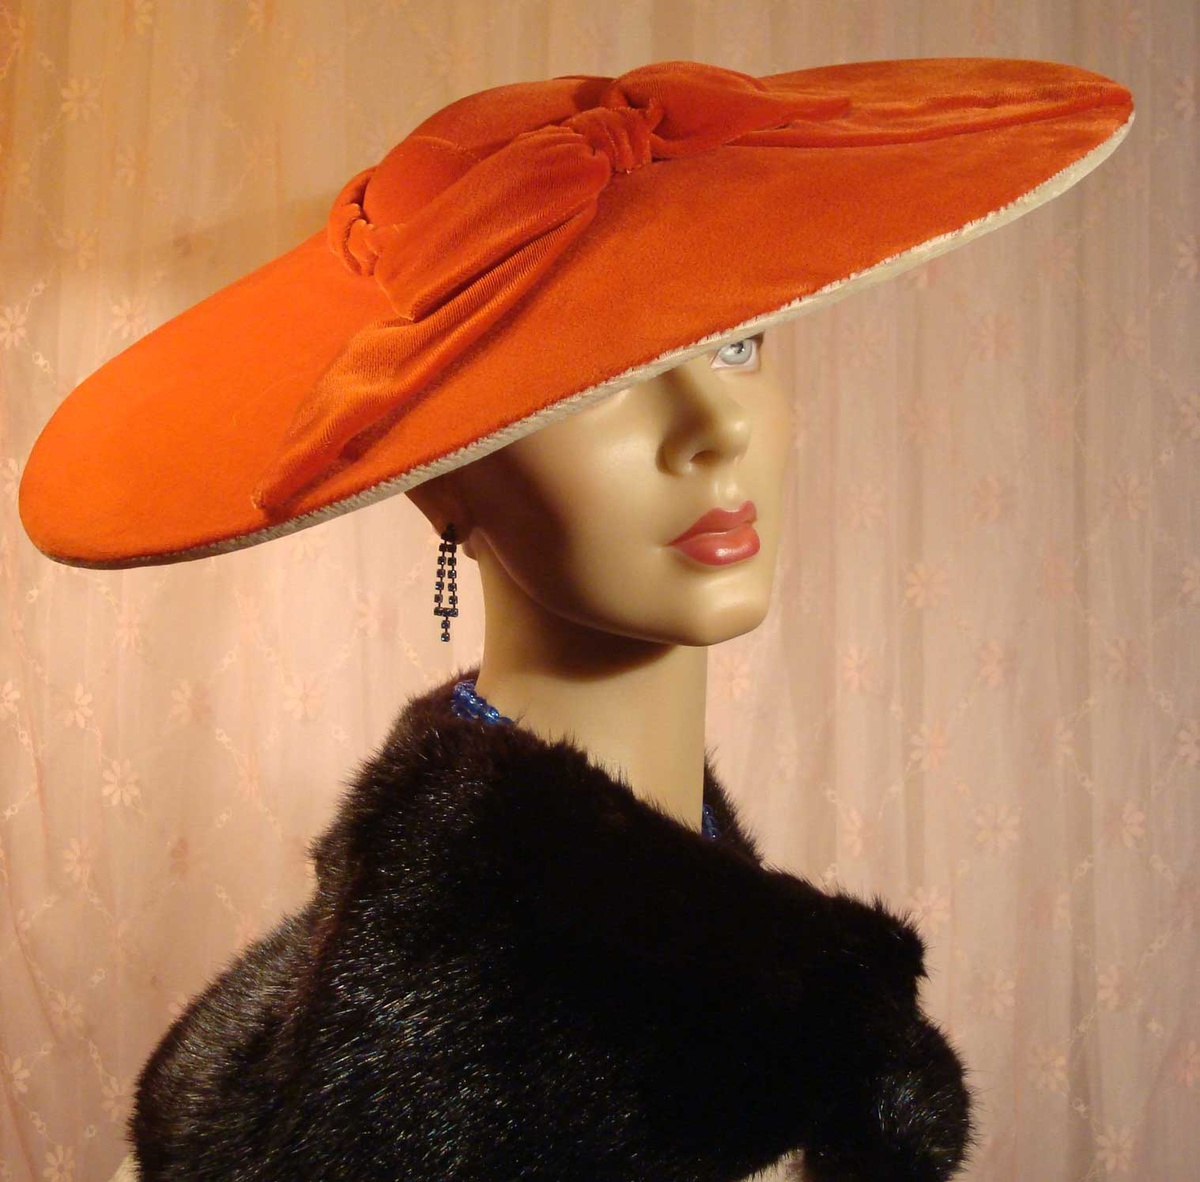 Glamorous Hats: Hollywood Glam Orange Velvet Pancake Hat Ca 1940s